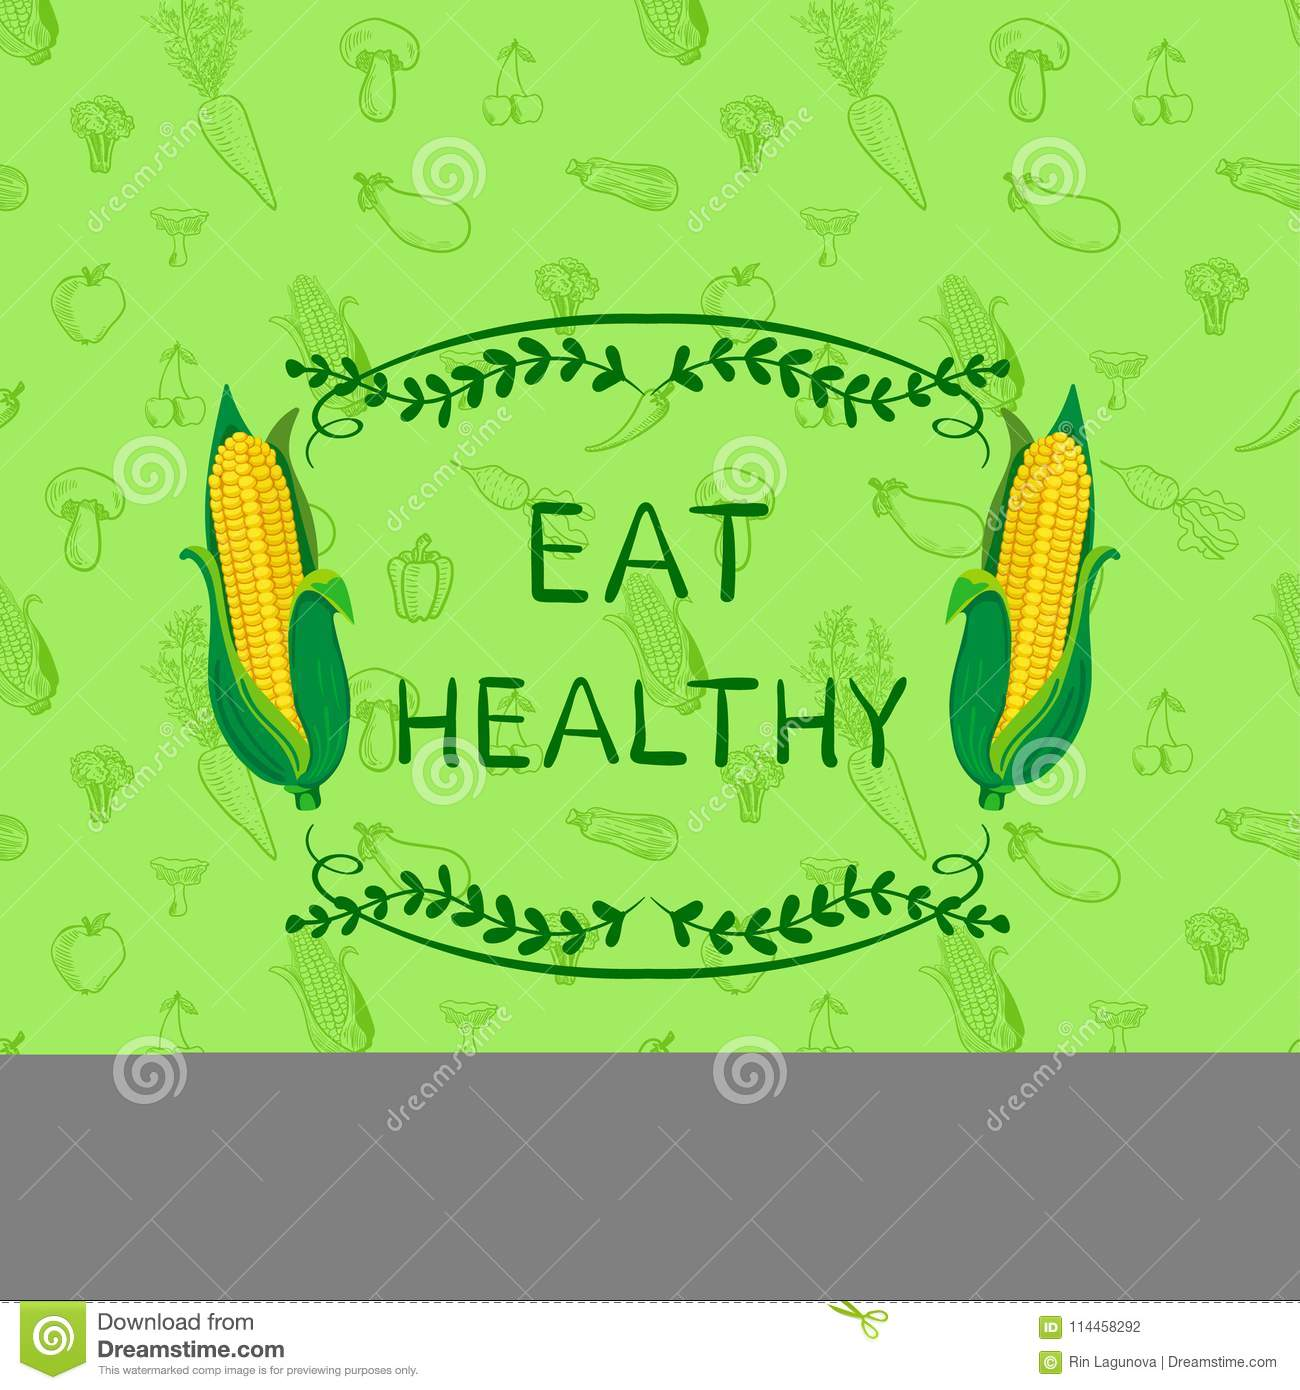 Healthy Eating VECTOR Motivational Poster Design Template, Doodle Hand Drawn Seamless Pattern with Vegetables and Frame